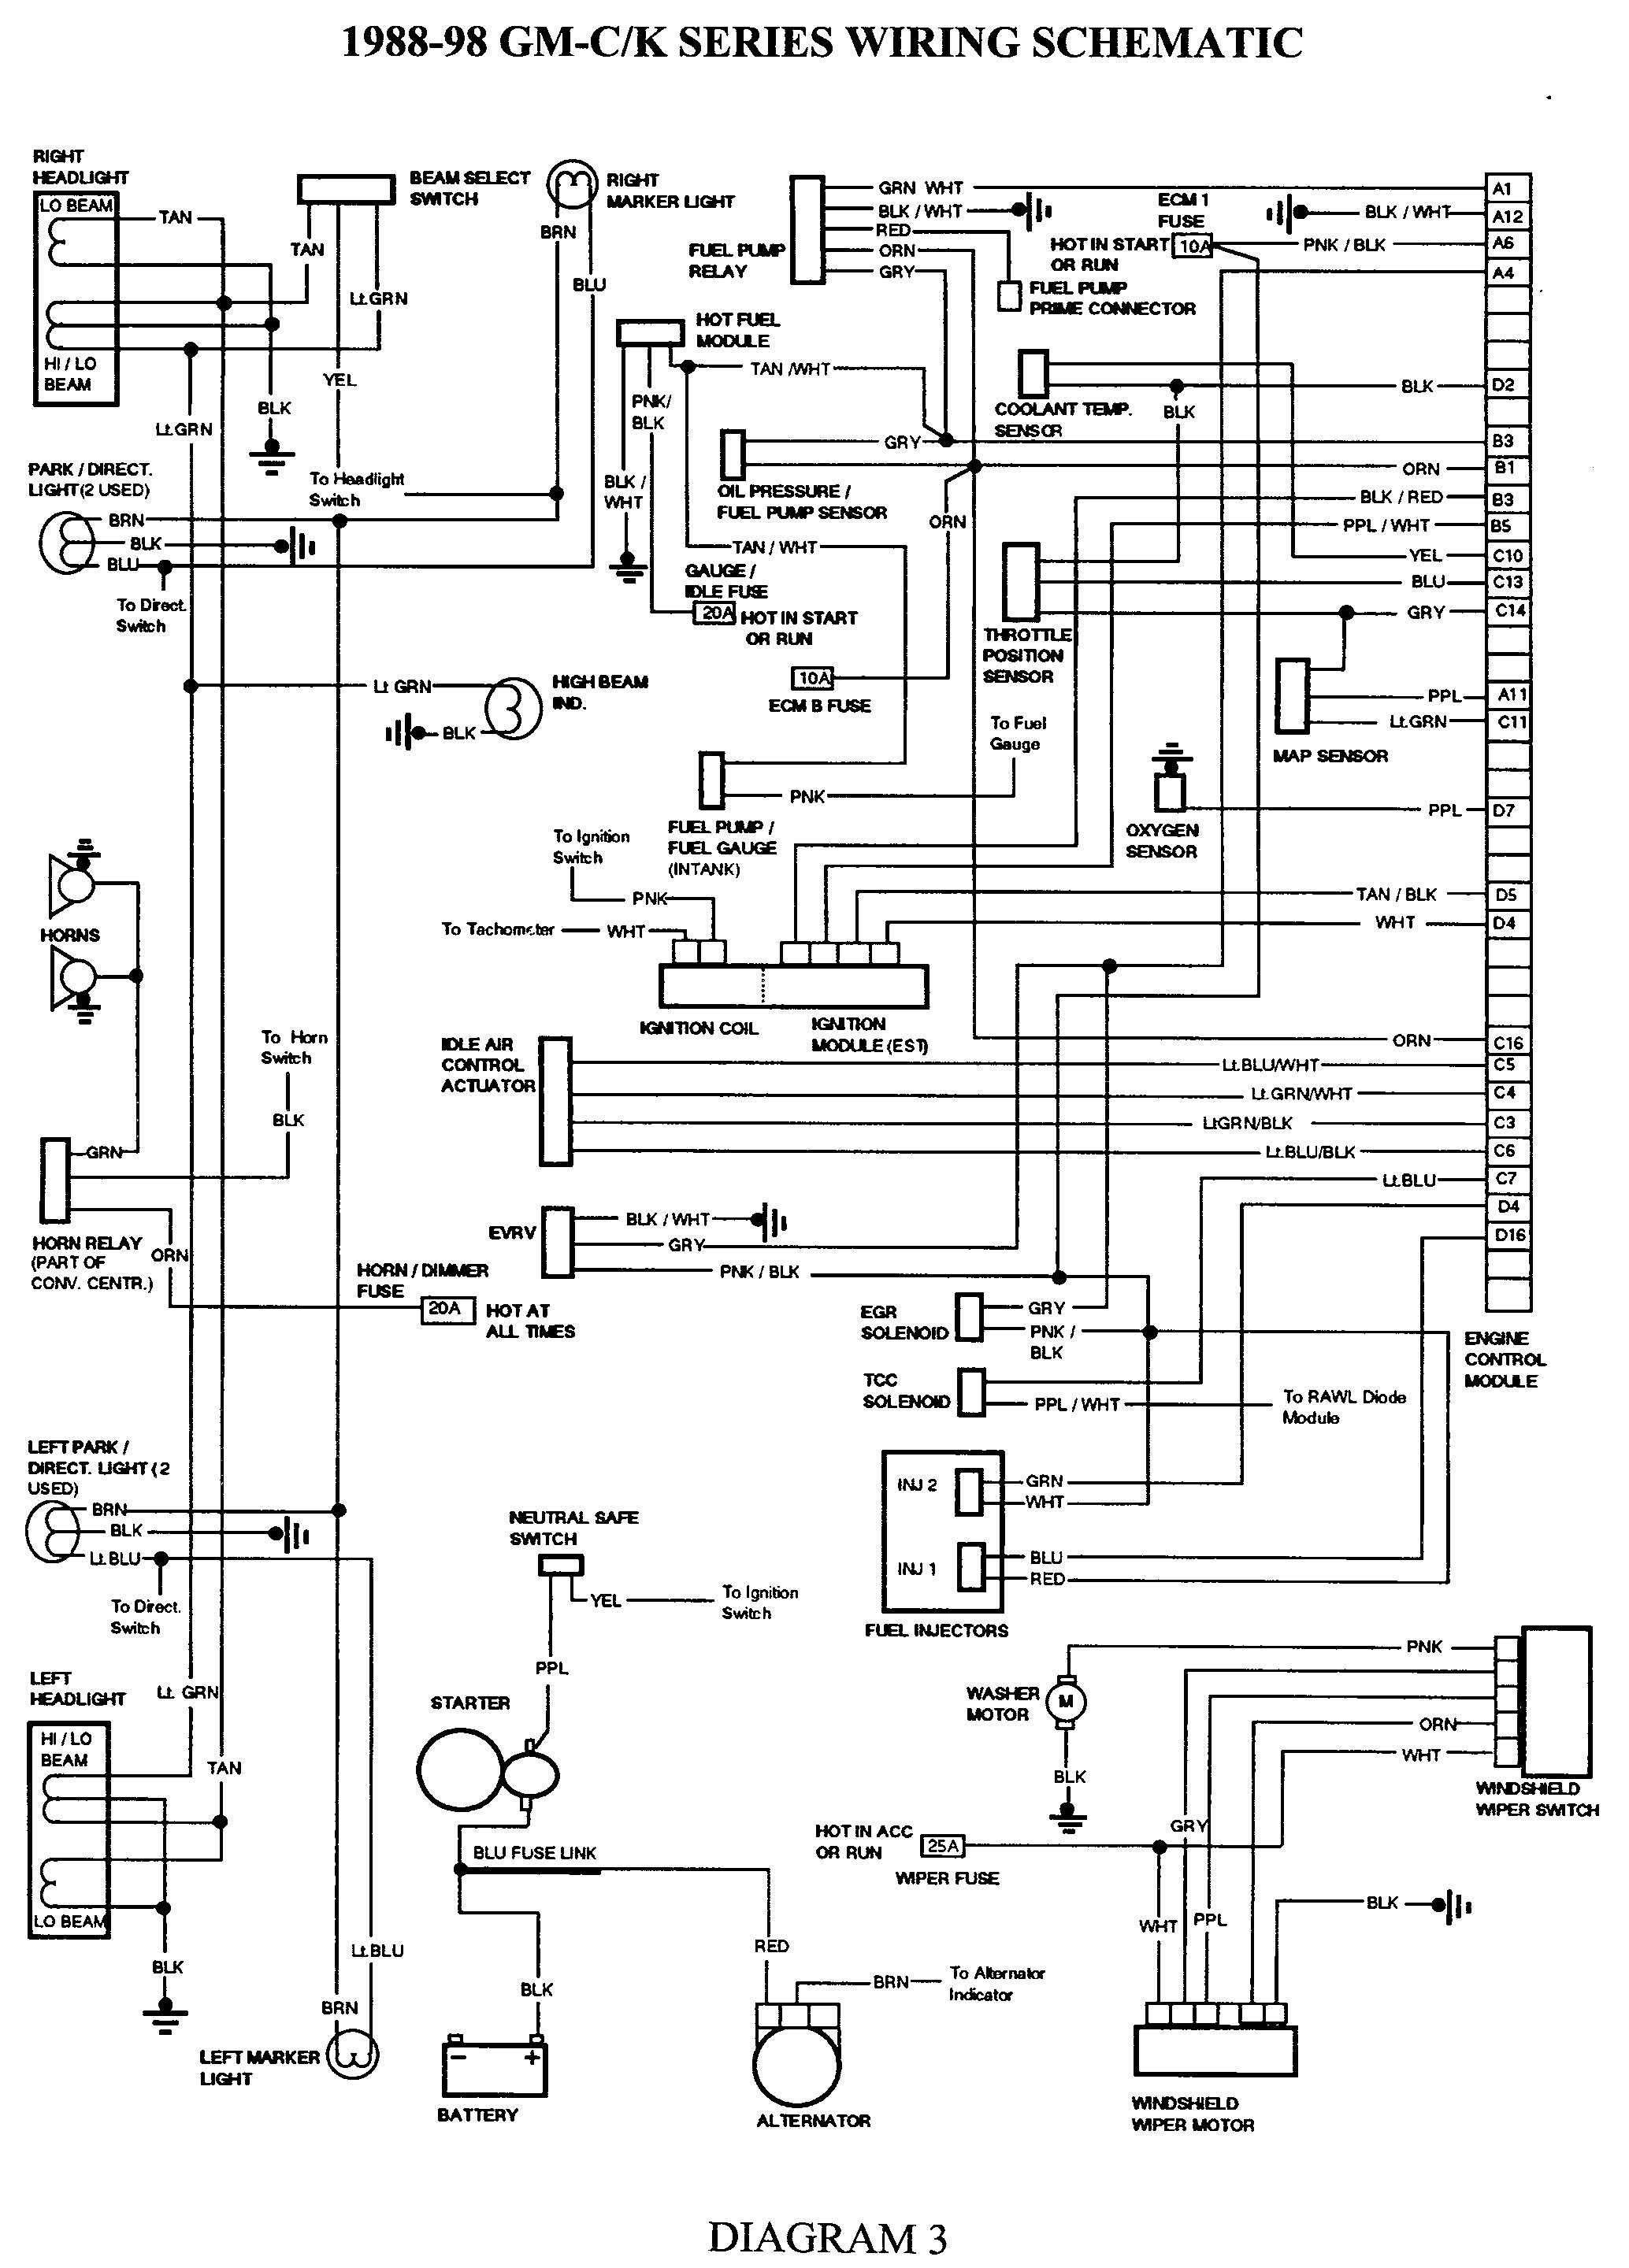 gmc t8500 wiring diagram box wiring diagram McNeilus Wiring Diagrams gmc t8500 wiring diagram wiring diagram schematic gmc dump truck gmc t8500 wiring diagram